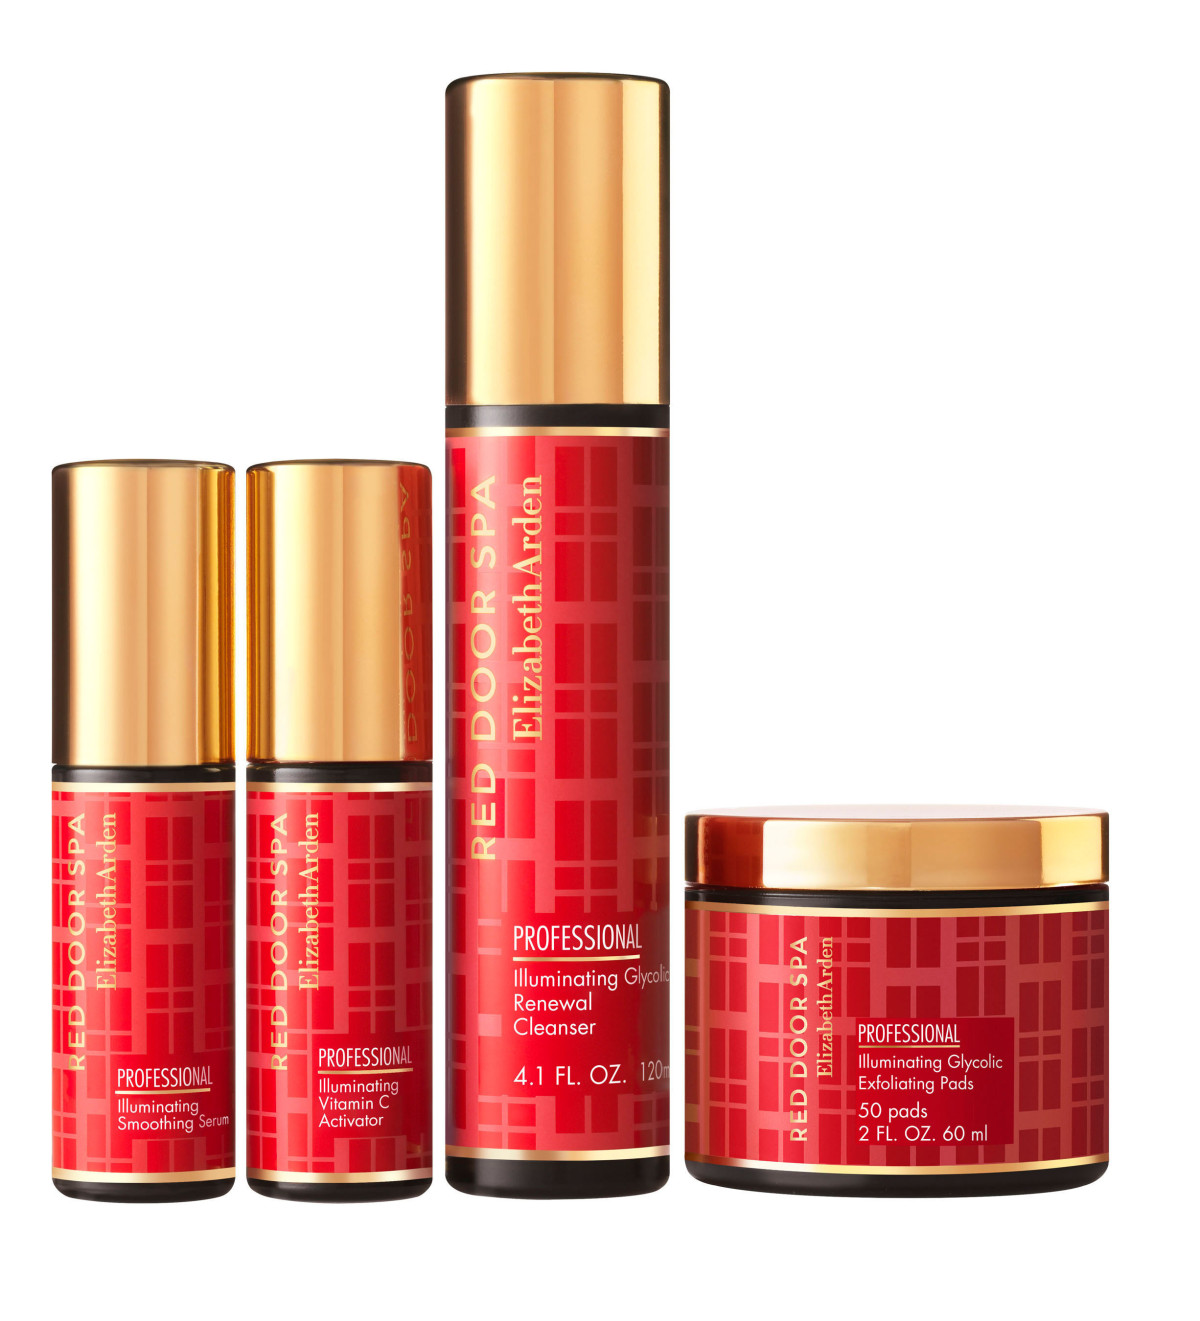 elizabeth arden red door spa first skincare line